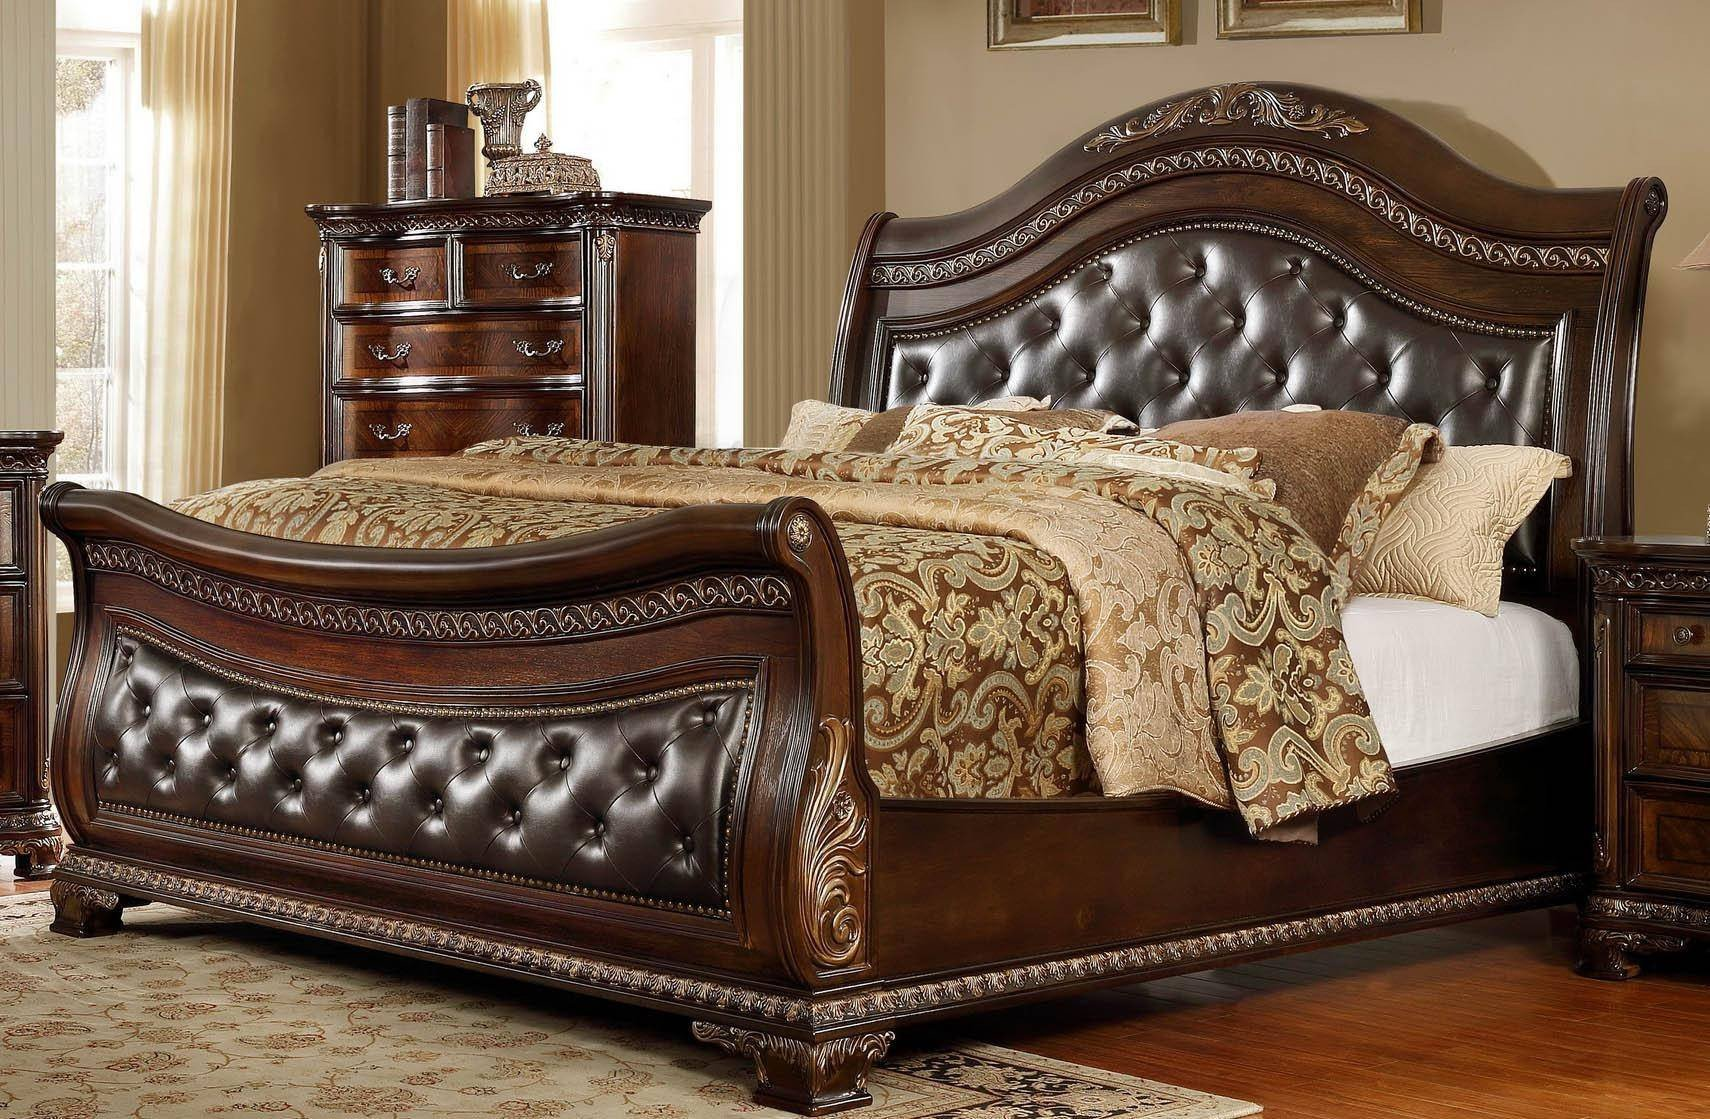 King Bedroom Set for Sale New Mcferran B9588 King Sleigh Bed In Oak Veneers Dark Cherry Finish Leather